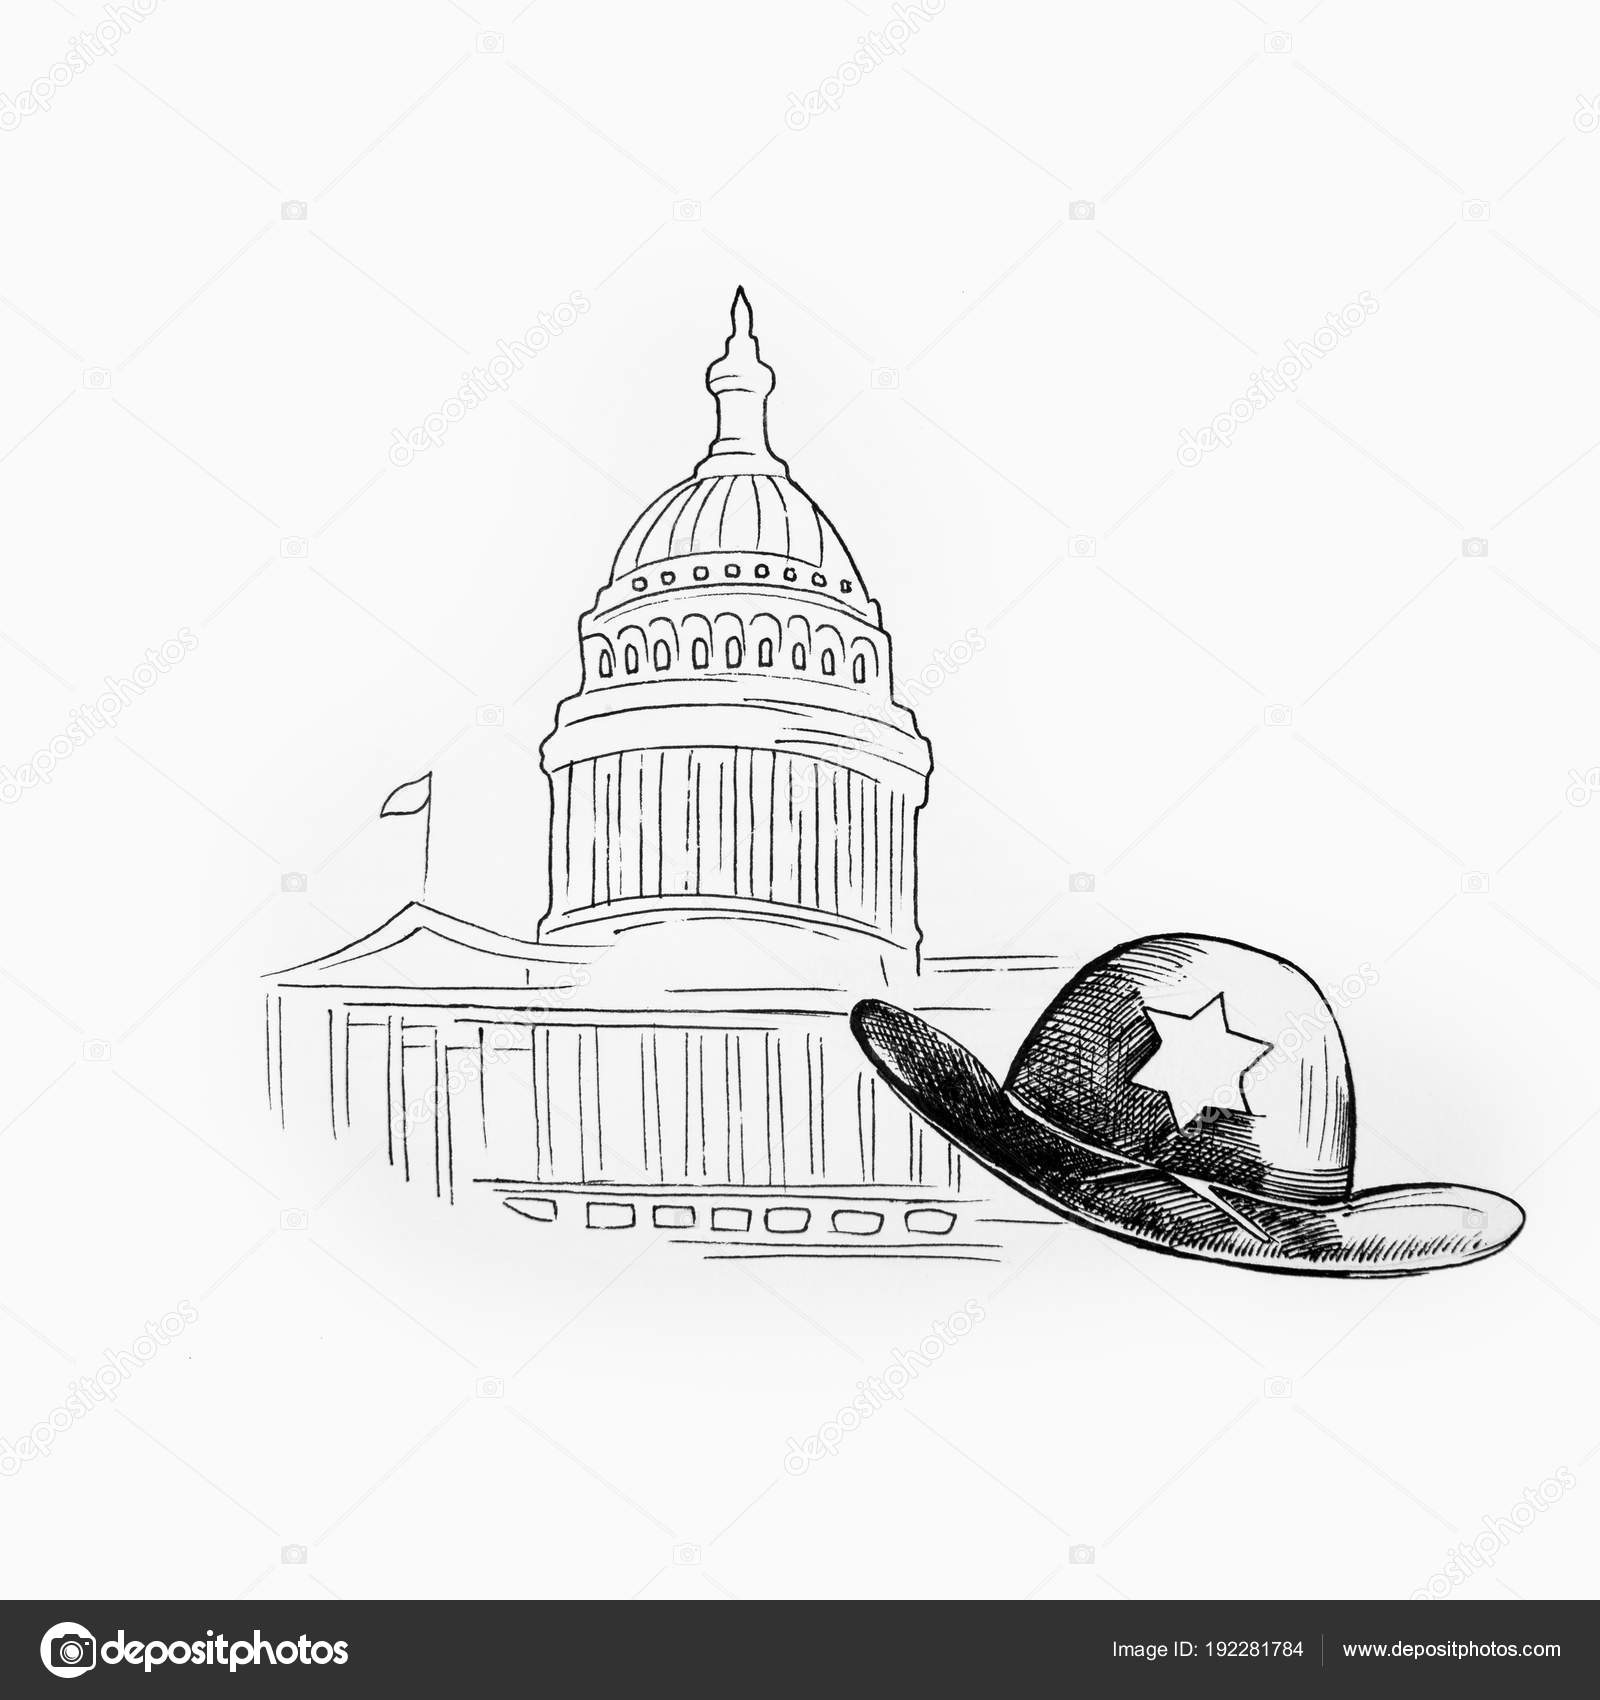 07aae8b6 Sketch of a white house and a sheriffs hat on a white background ...